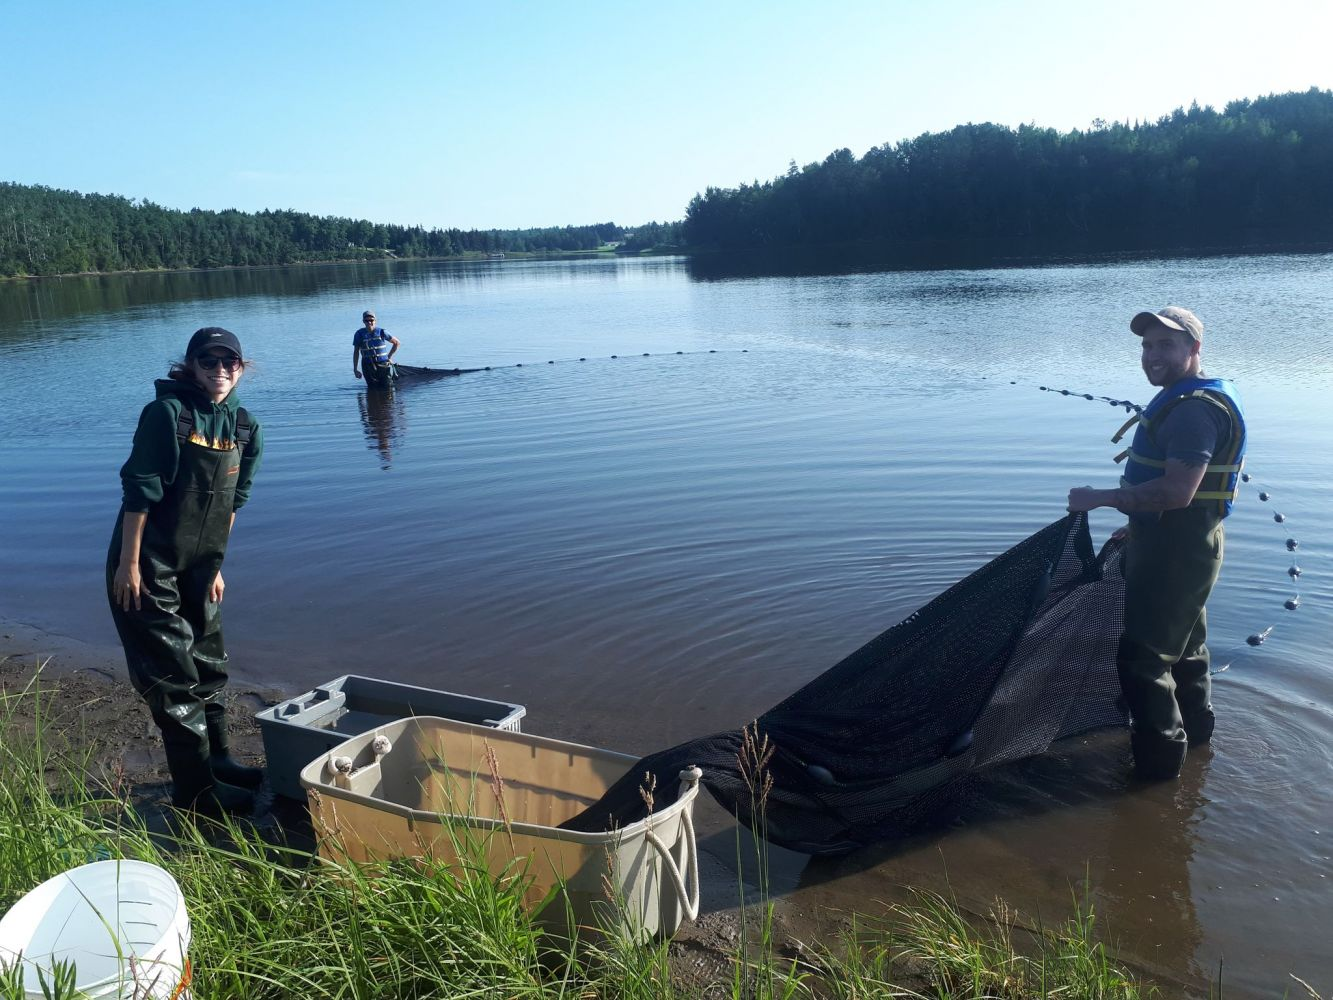 Seining for striped bass juveniles